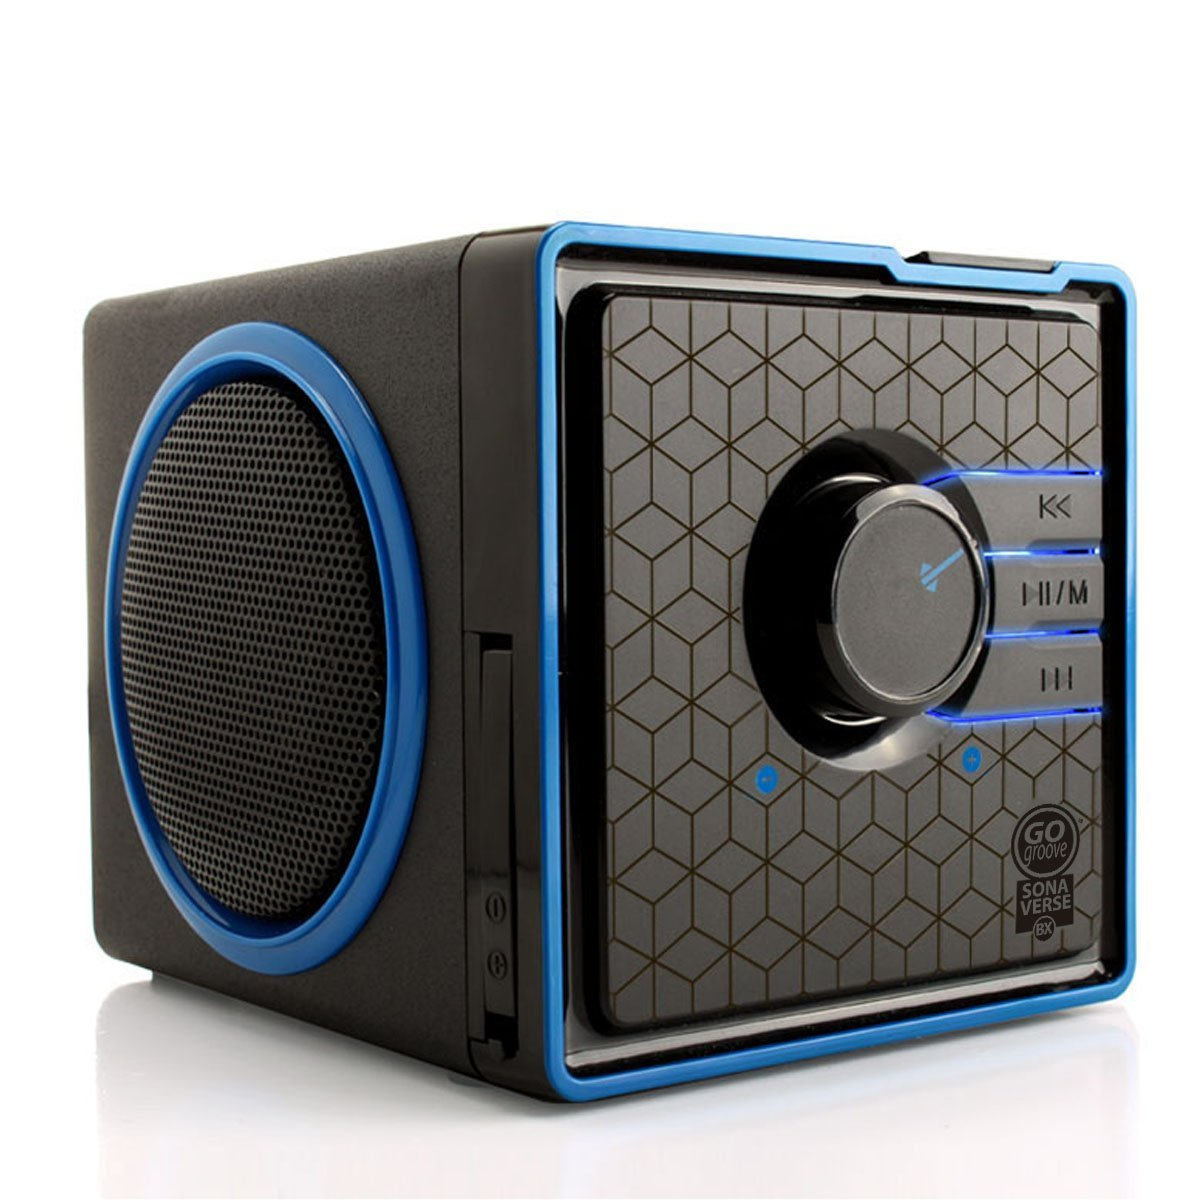 GoGroove SonaVERSE BX Portable Stereo Speaker System w/ Rechargeable Battery